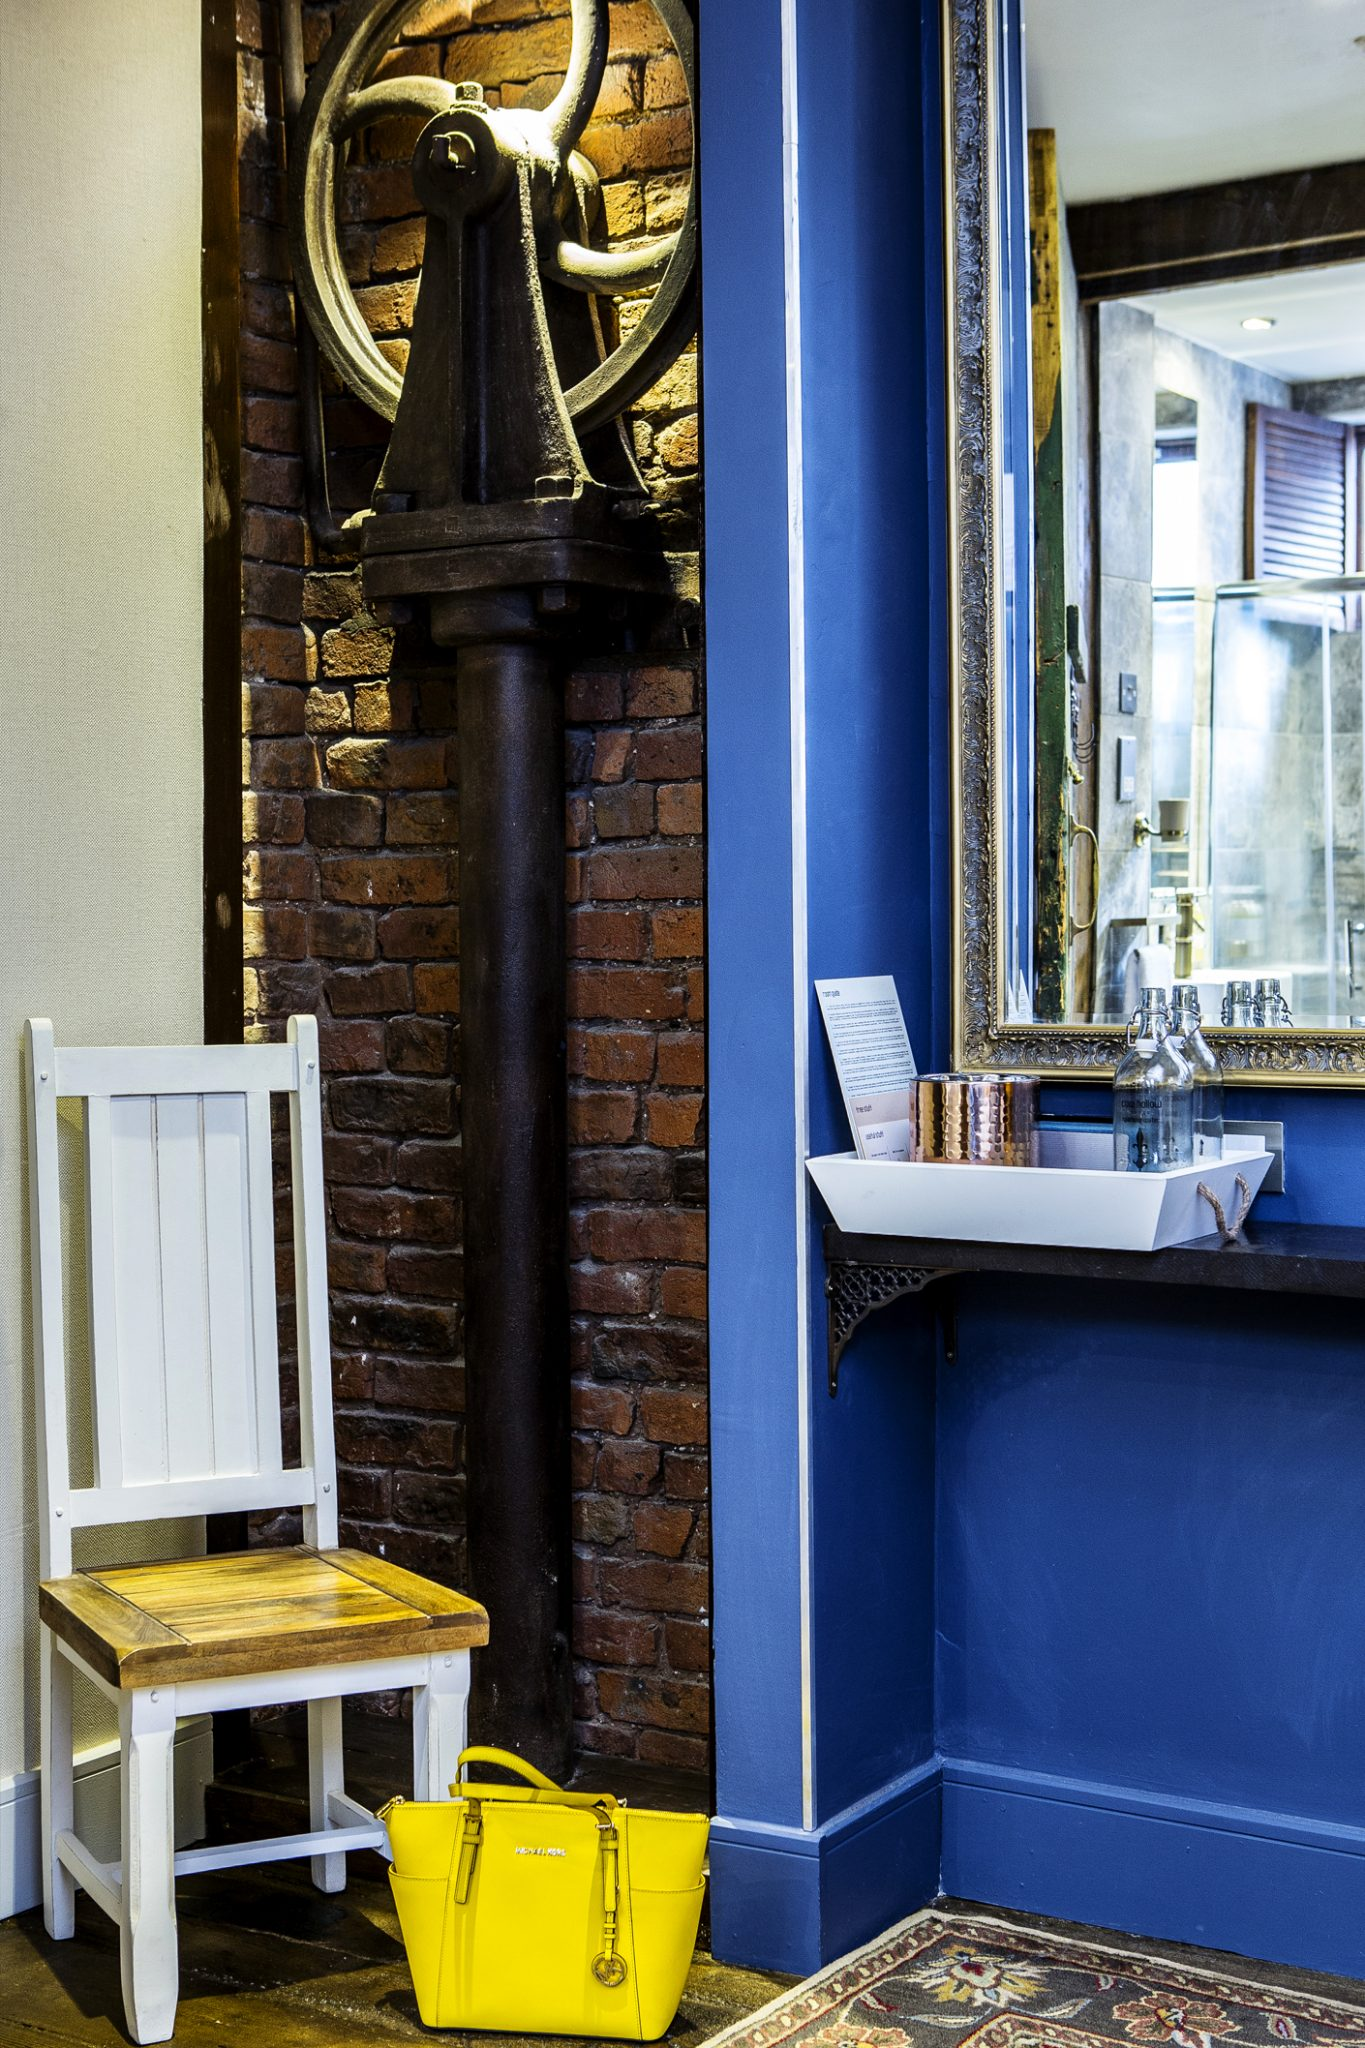 interior photography and room set design at the cow hollow hotel in manchester